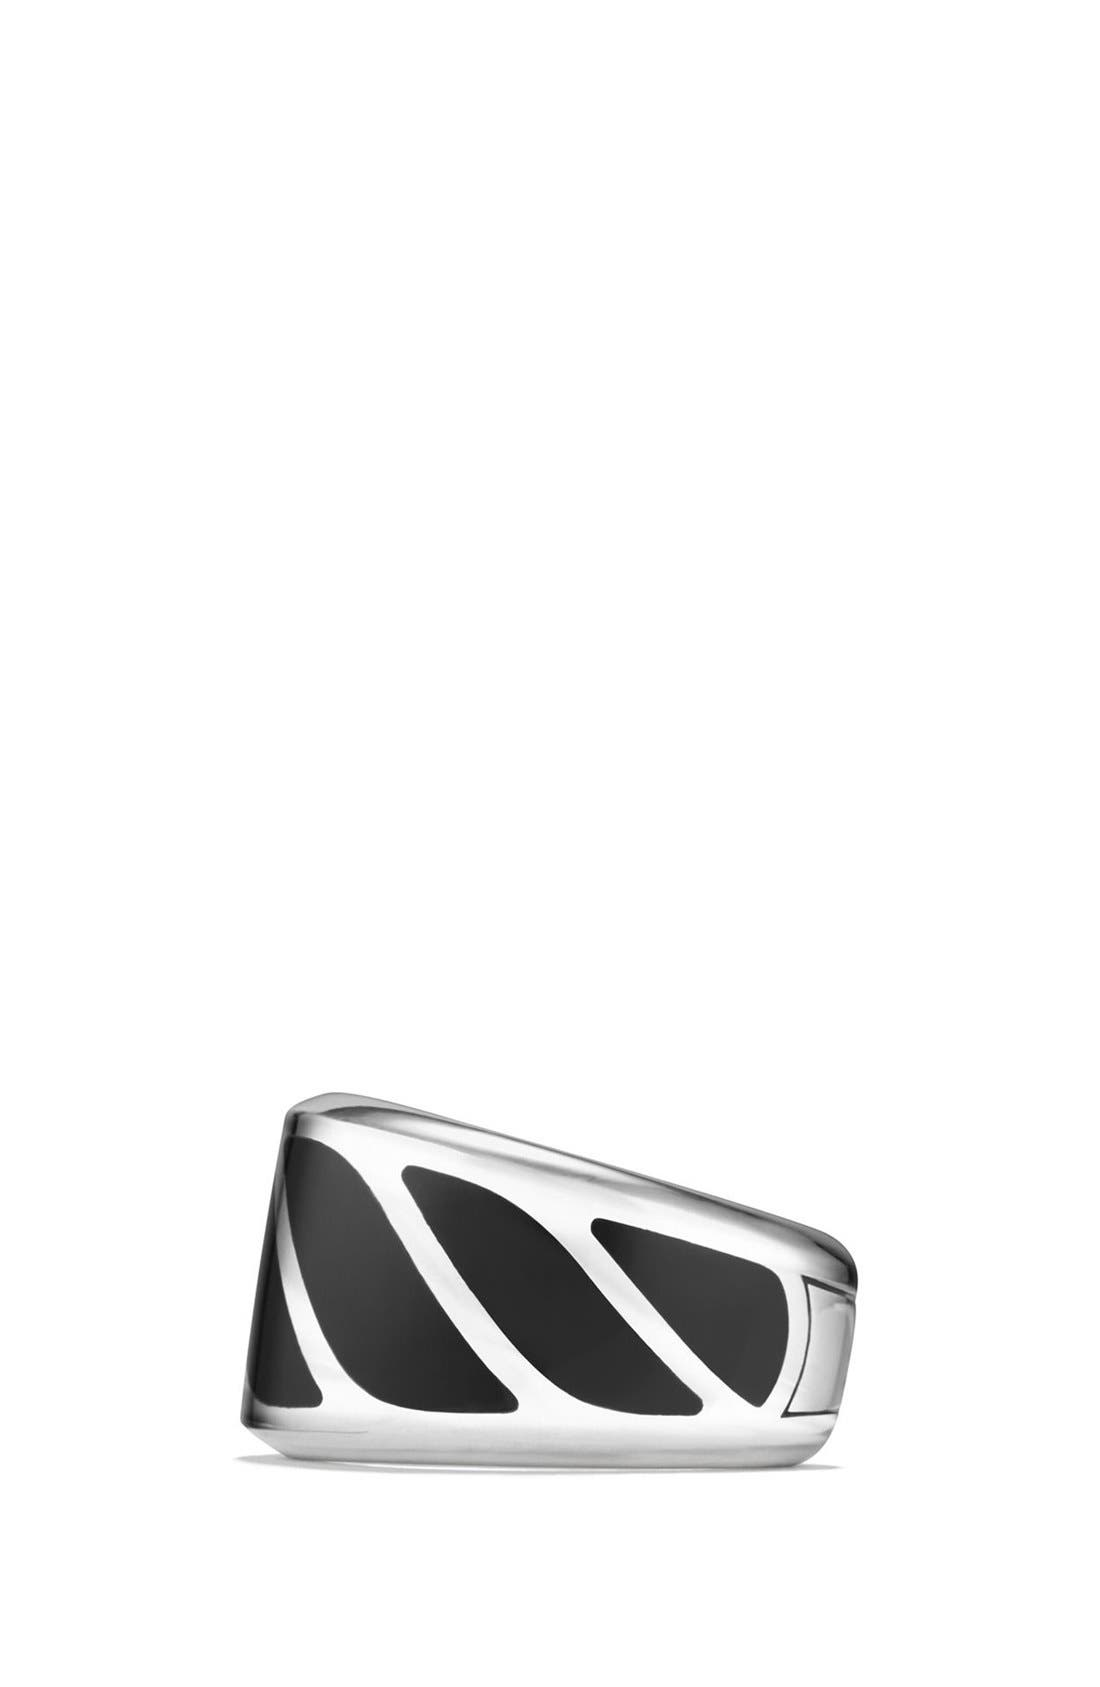 'Graphic Cable' Band Ring,                             Alternate thumbnail 2, color,                             Silver/ Black Onyx